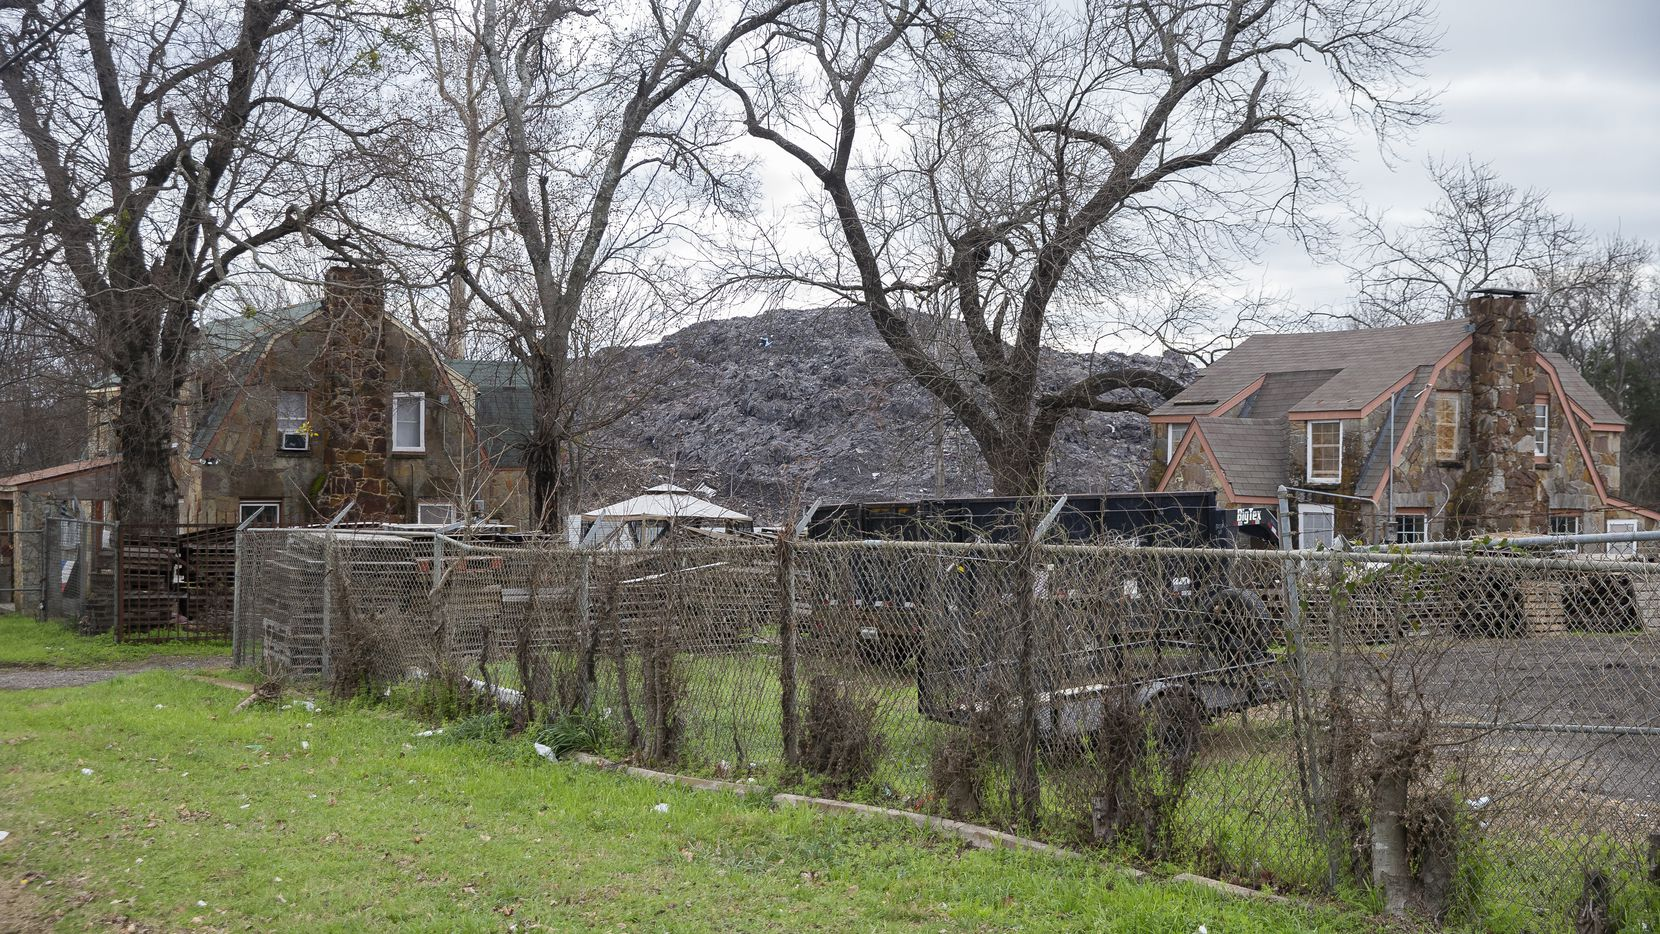 The mountain of roofing shingles at Blue Star Recycling off South Central Expressway in February 2020.